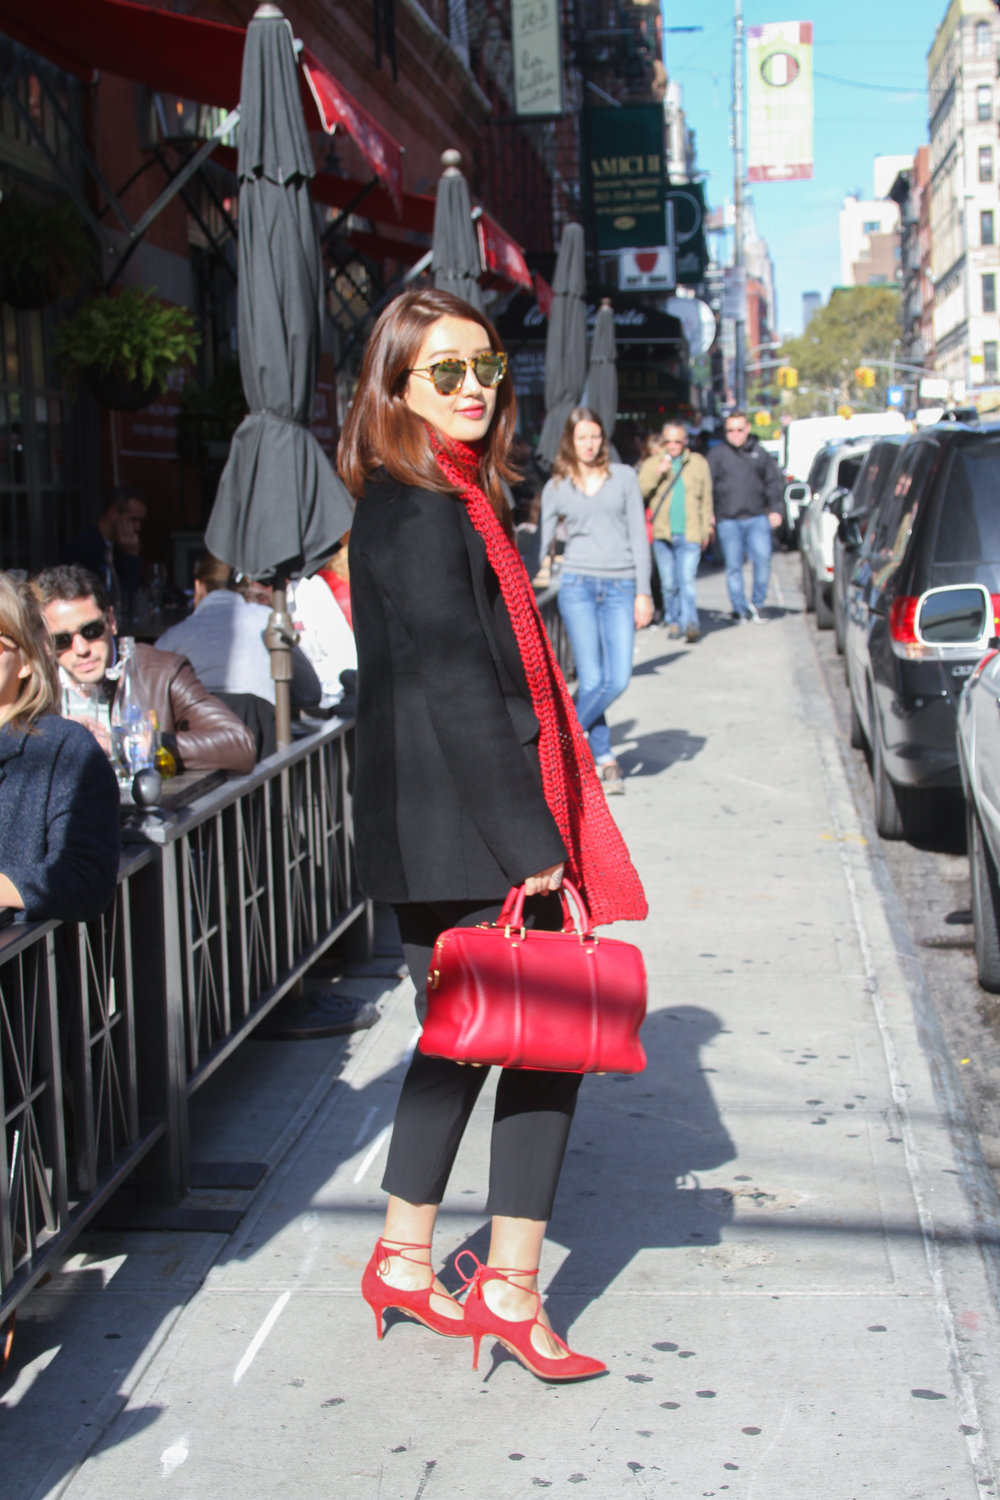 junelemongirl, june lemon girl, fashion blogger, street fashion, red scarf fashion, black coat fashion, red scarf street style, nyc street fashion, red lace up pumps, lace up pumps, red satchel, black cropped pants, red over black, aquazzura